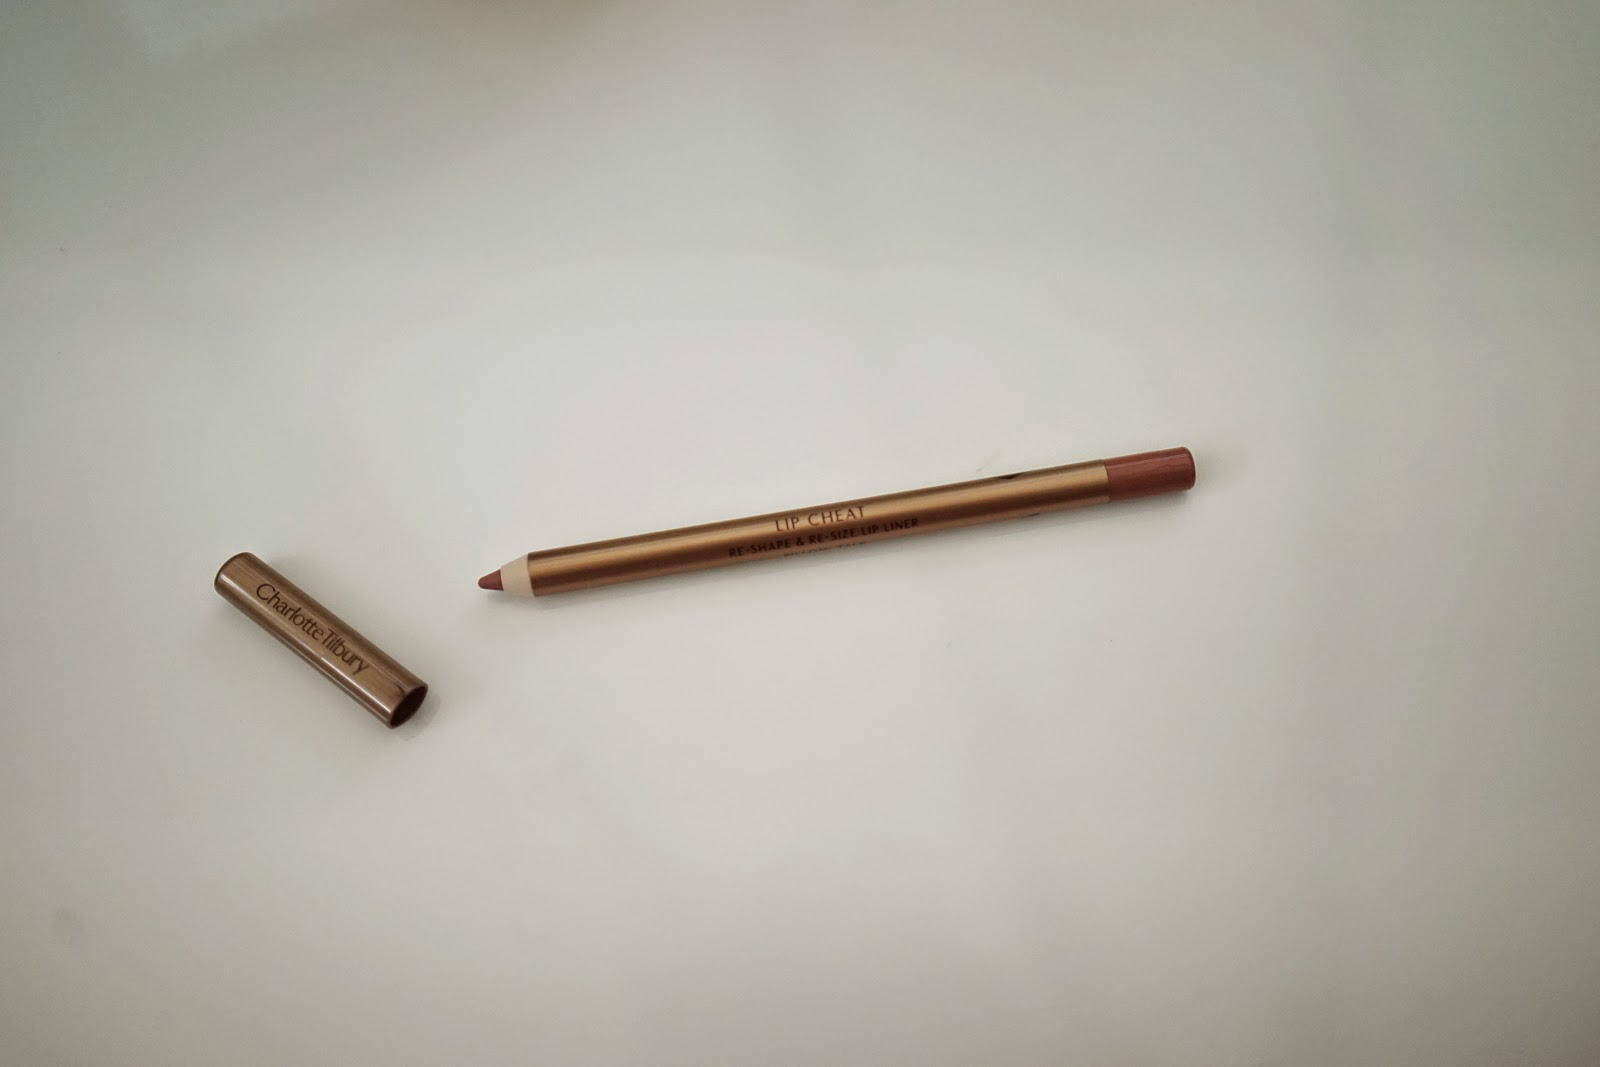 Charlotte Tilbury Lip Cheat, Re-Shape & Re-Size Lip Liner